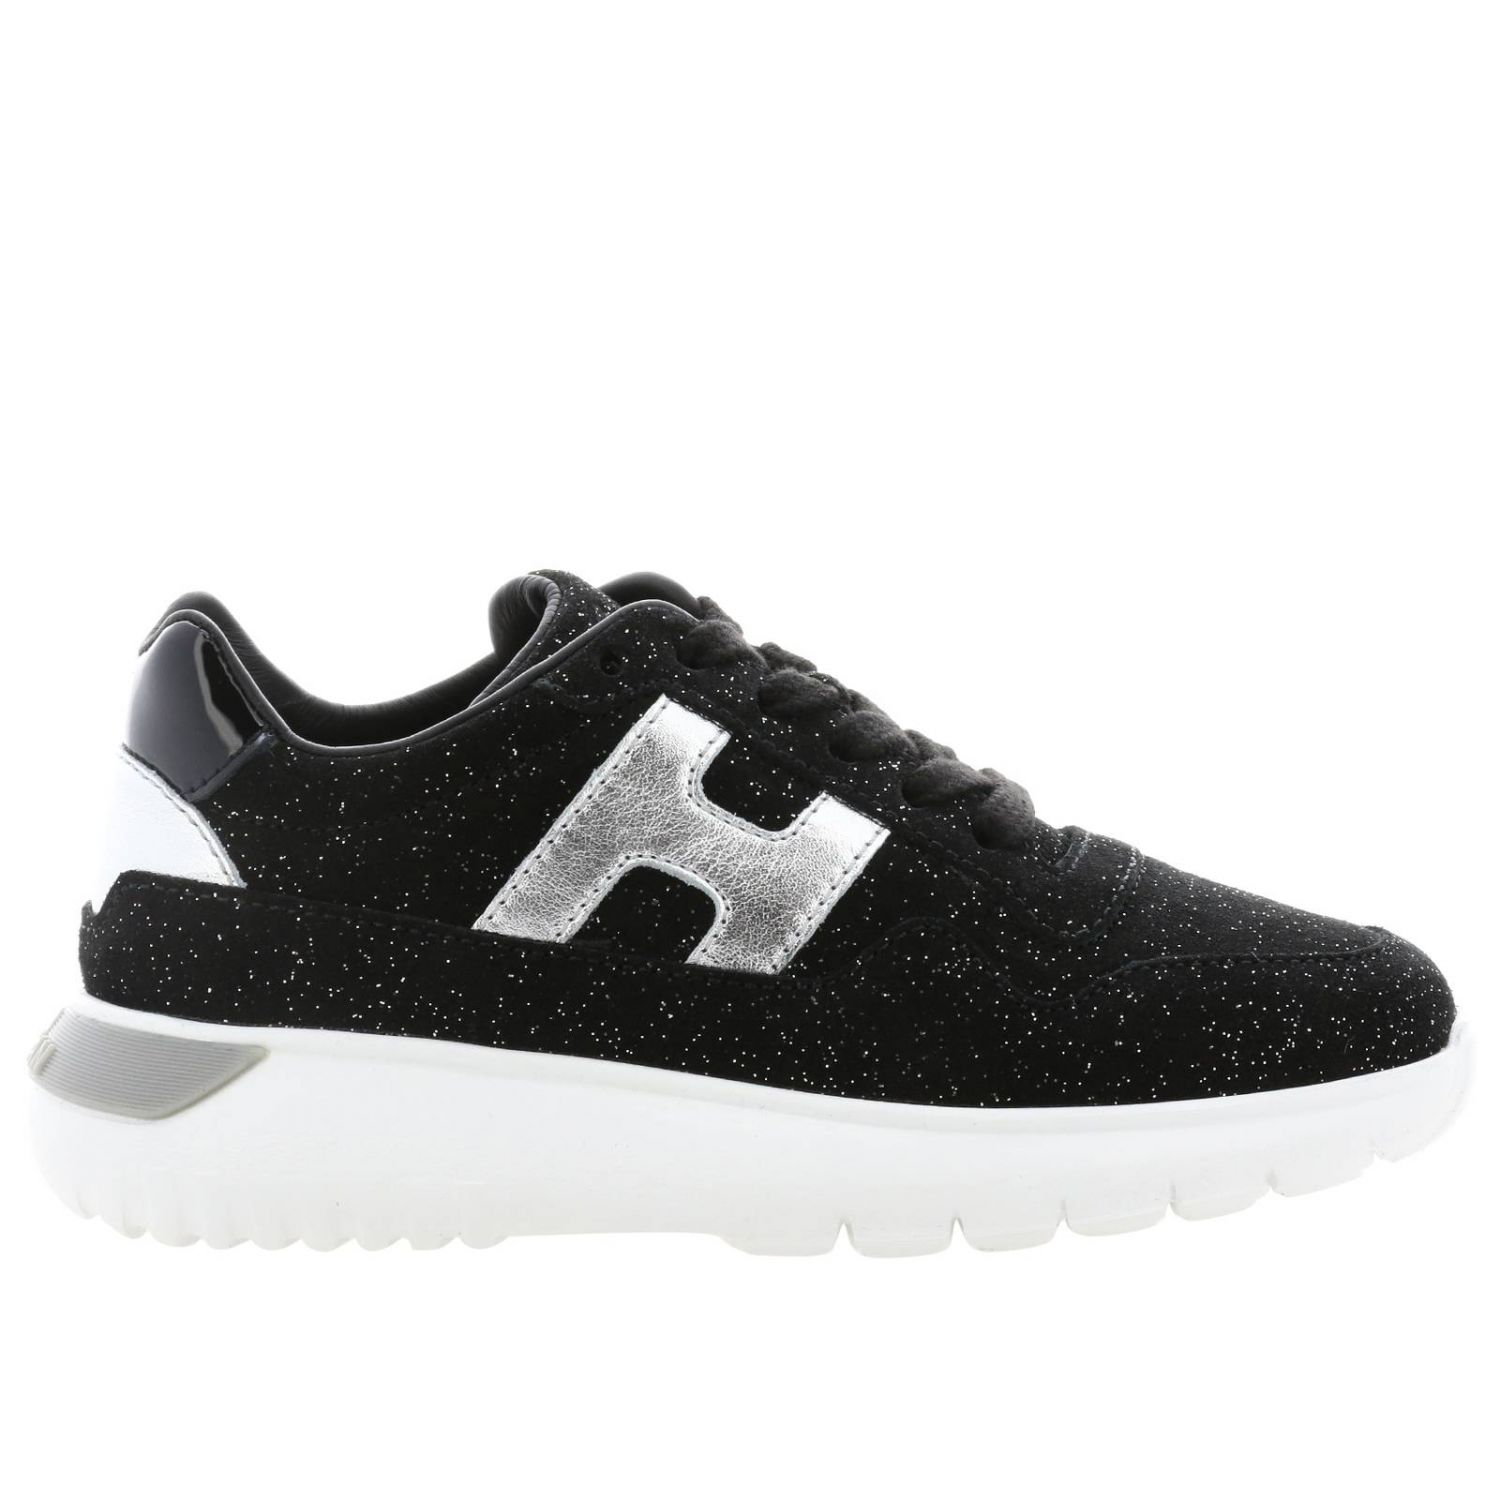 Cube Hogan sneakers in glitter suede with laminated H